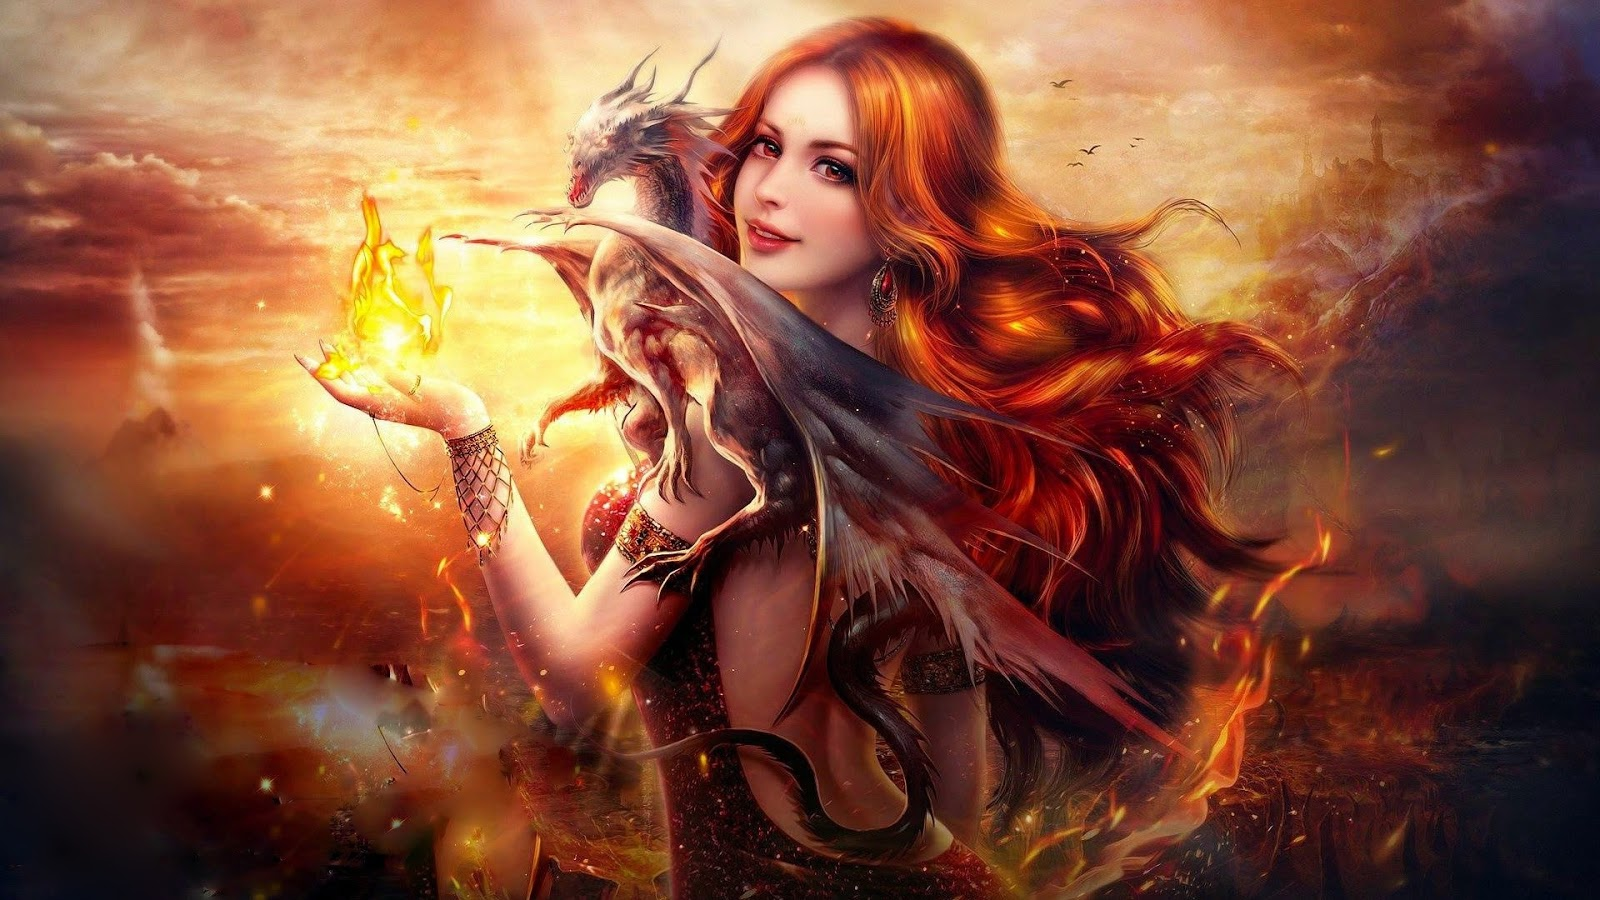 Dragon Fire Fantasy Girl HD Android Wallpaper